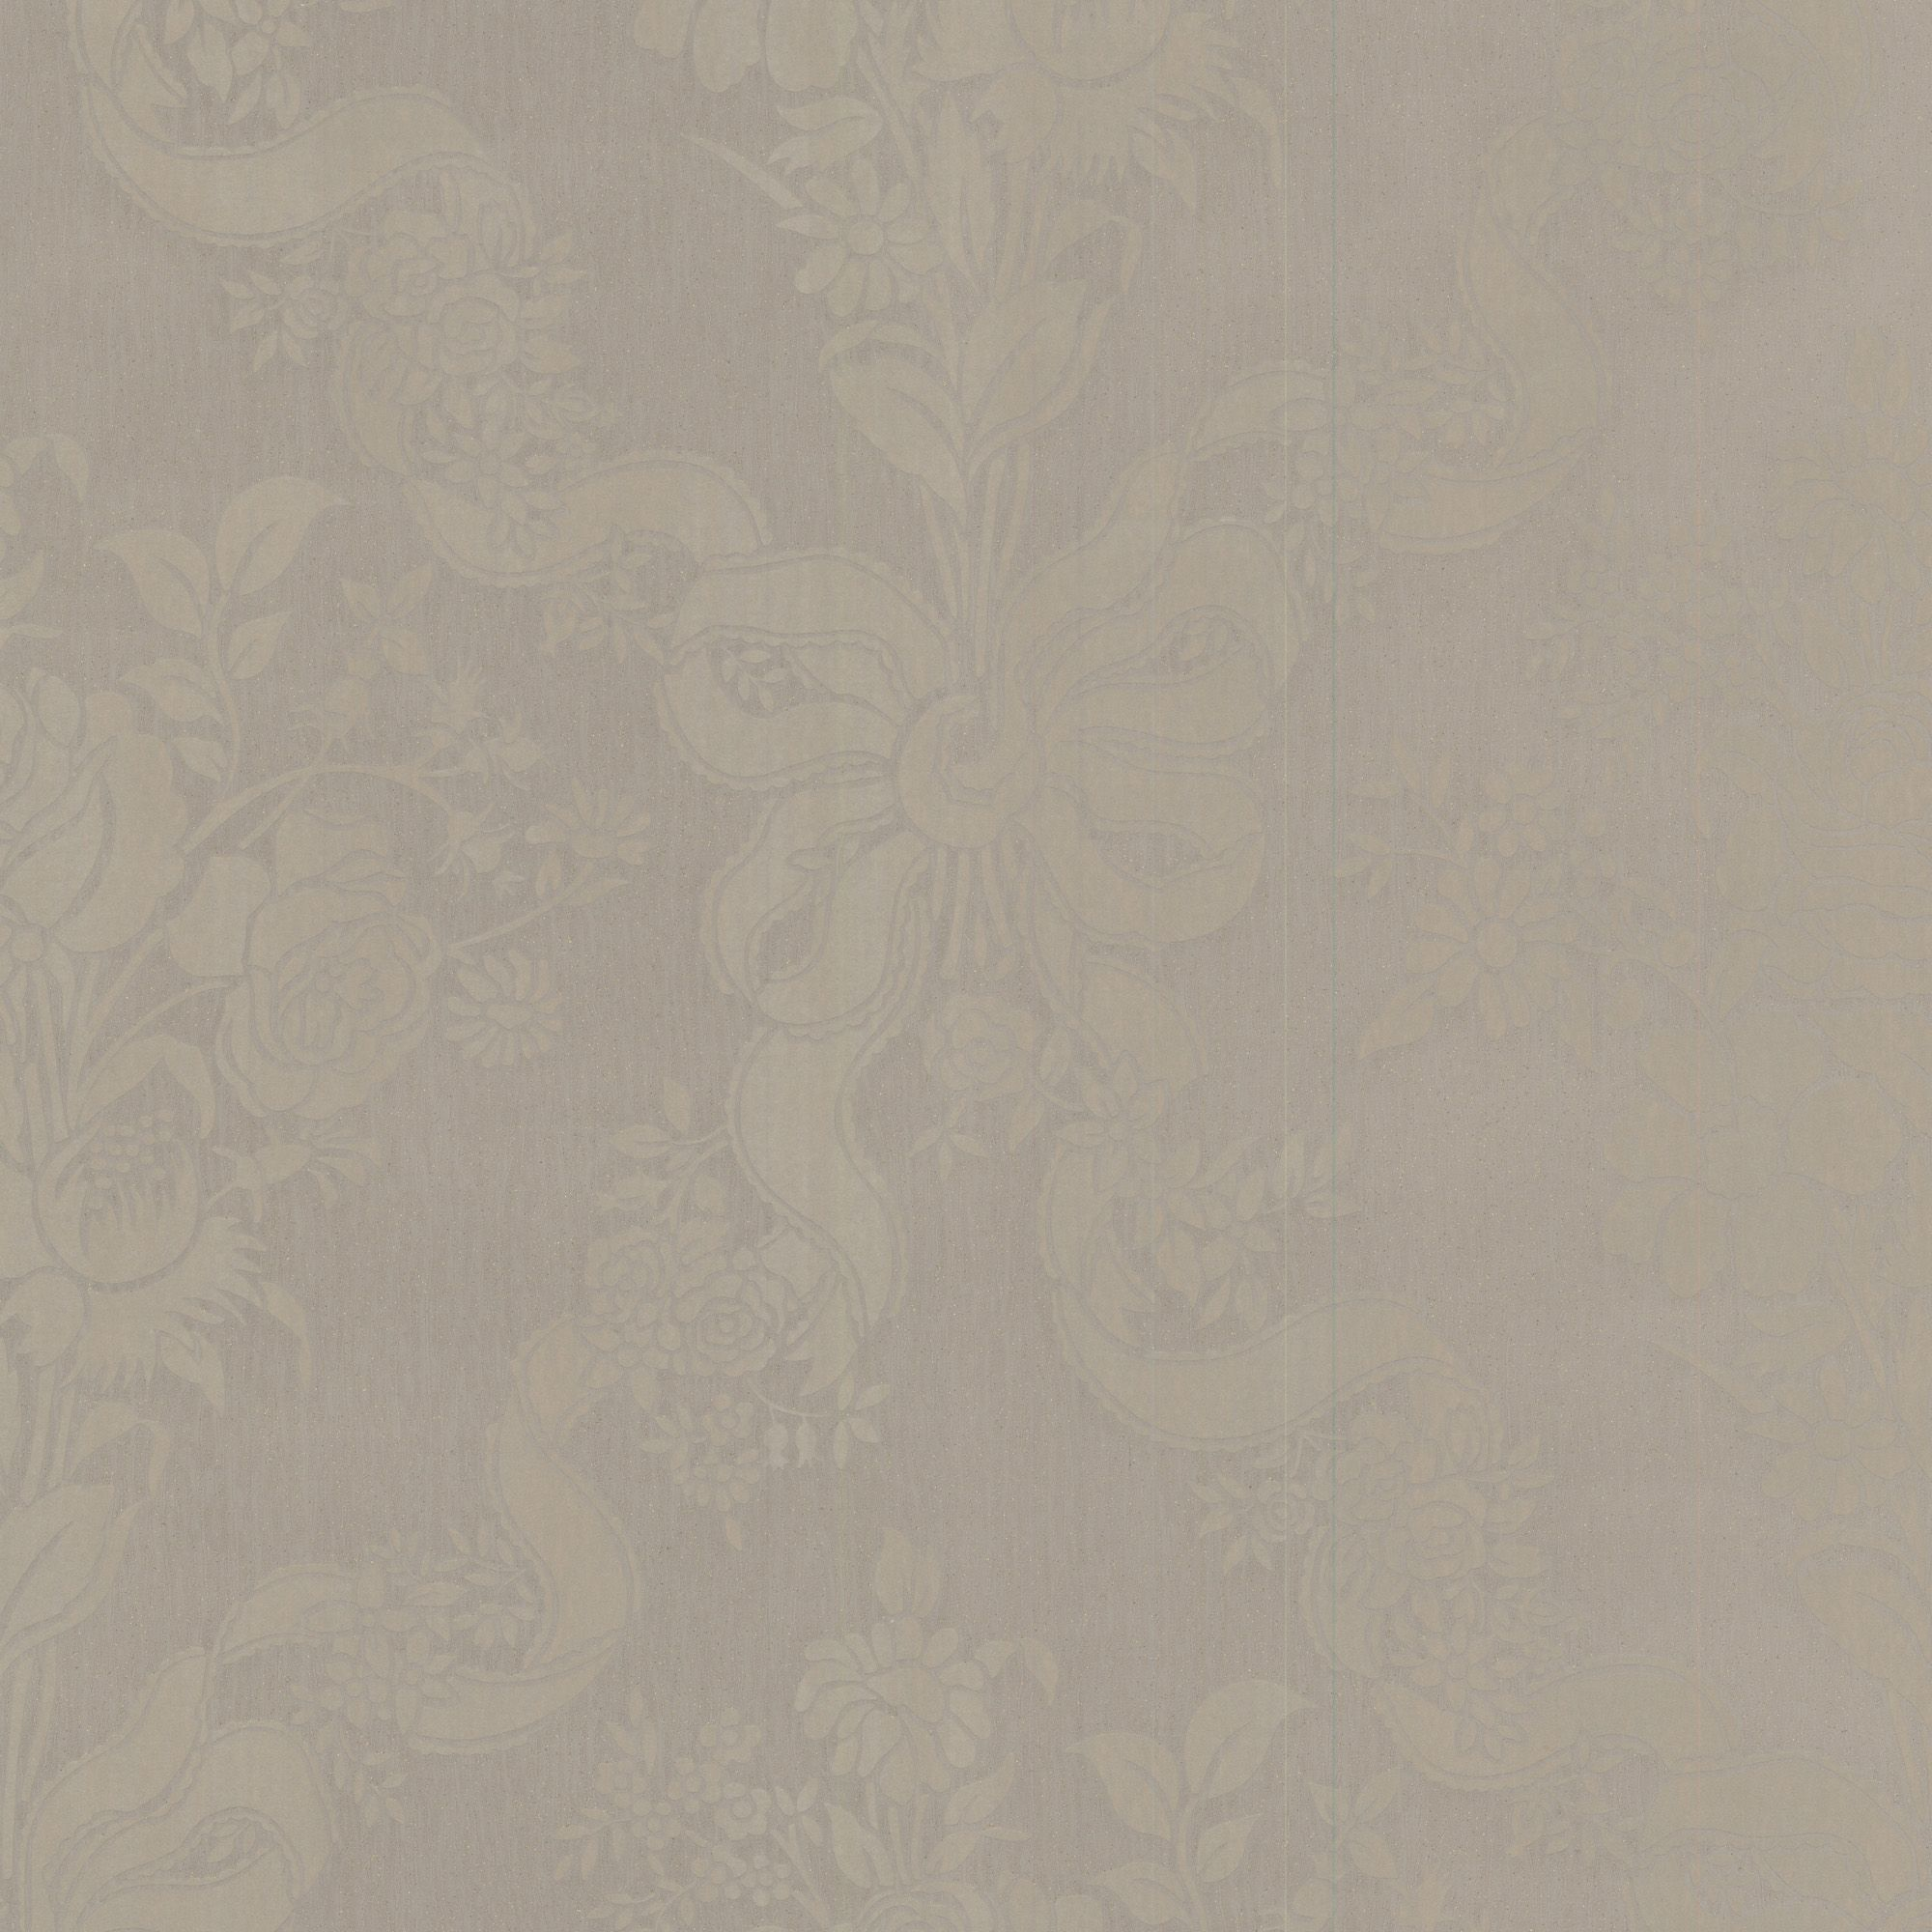 play kitchen accessories cabinets refacing cost graham & brown julien macdonald taupe damask wallpaper ...